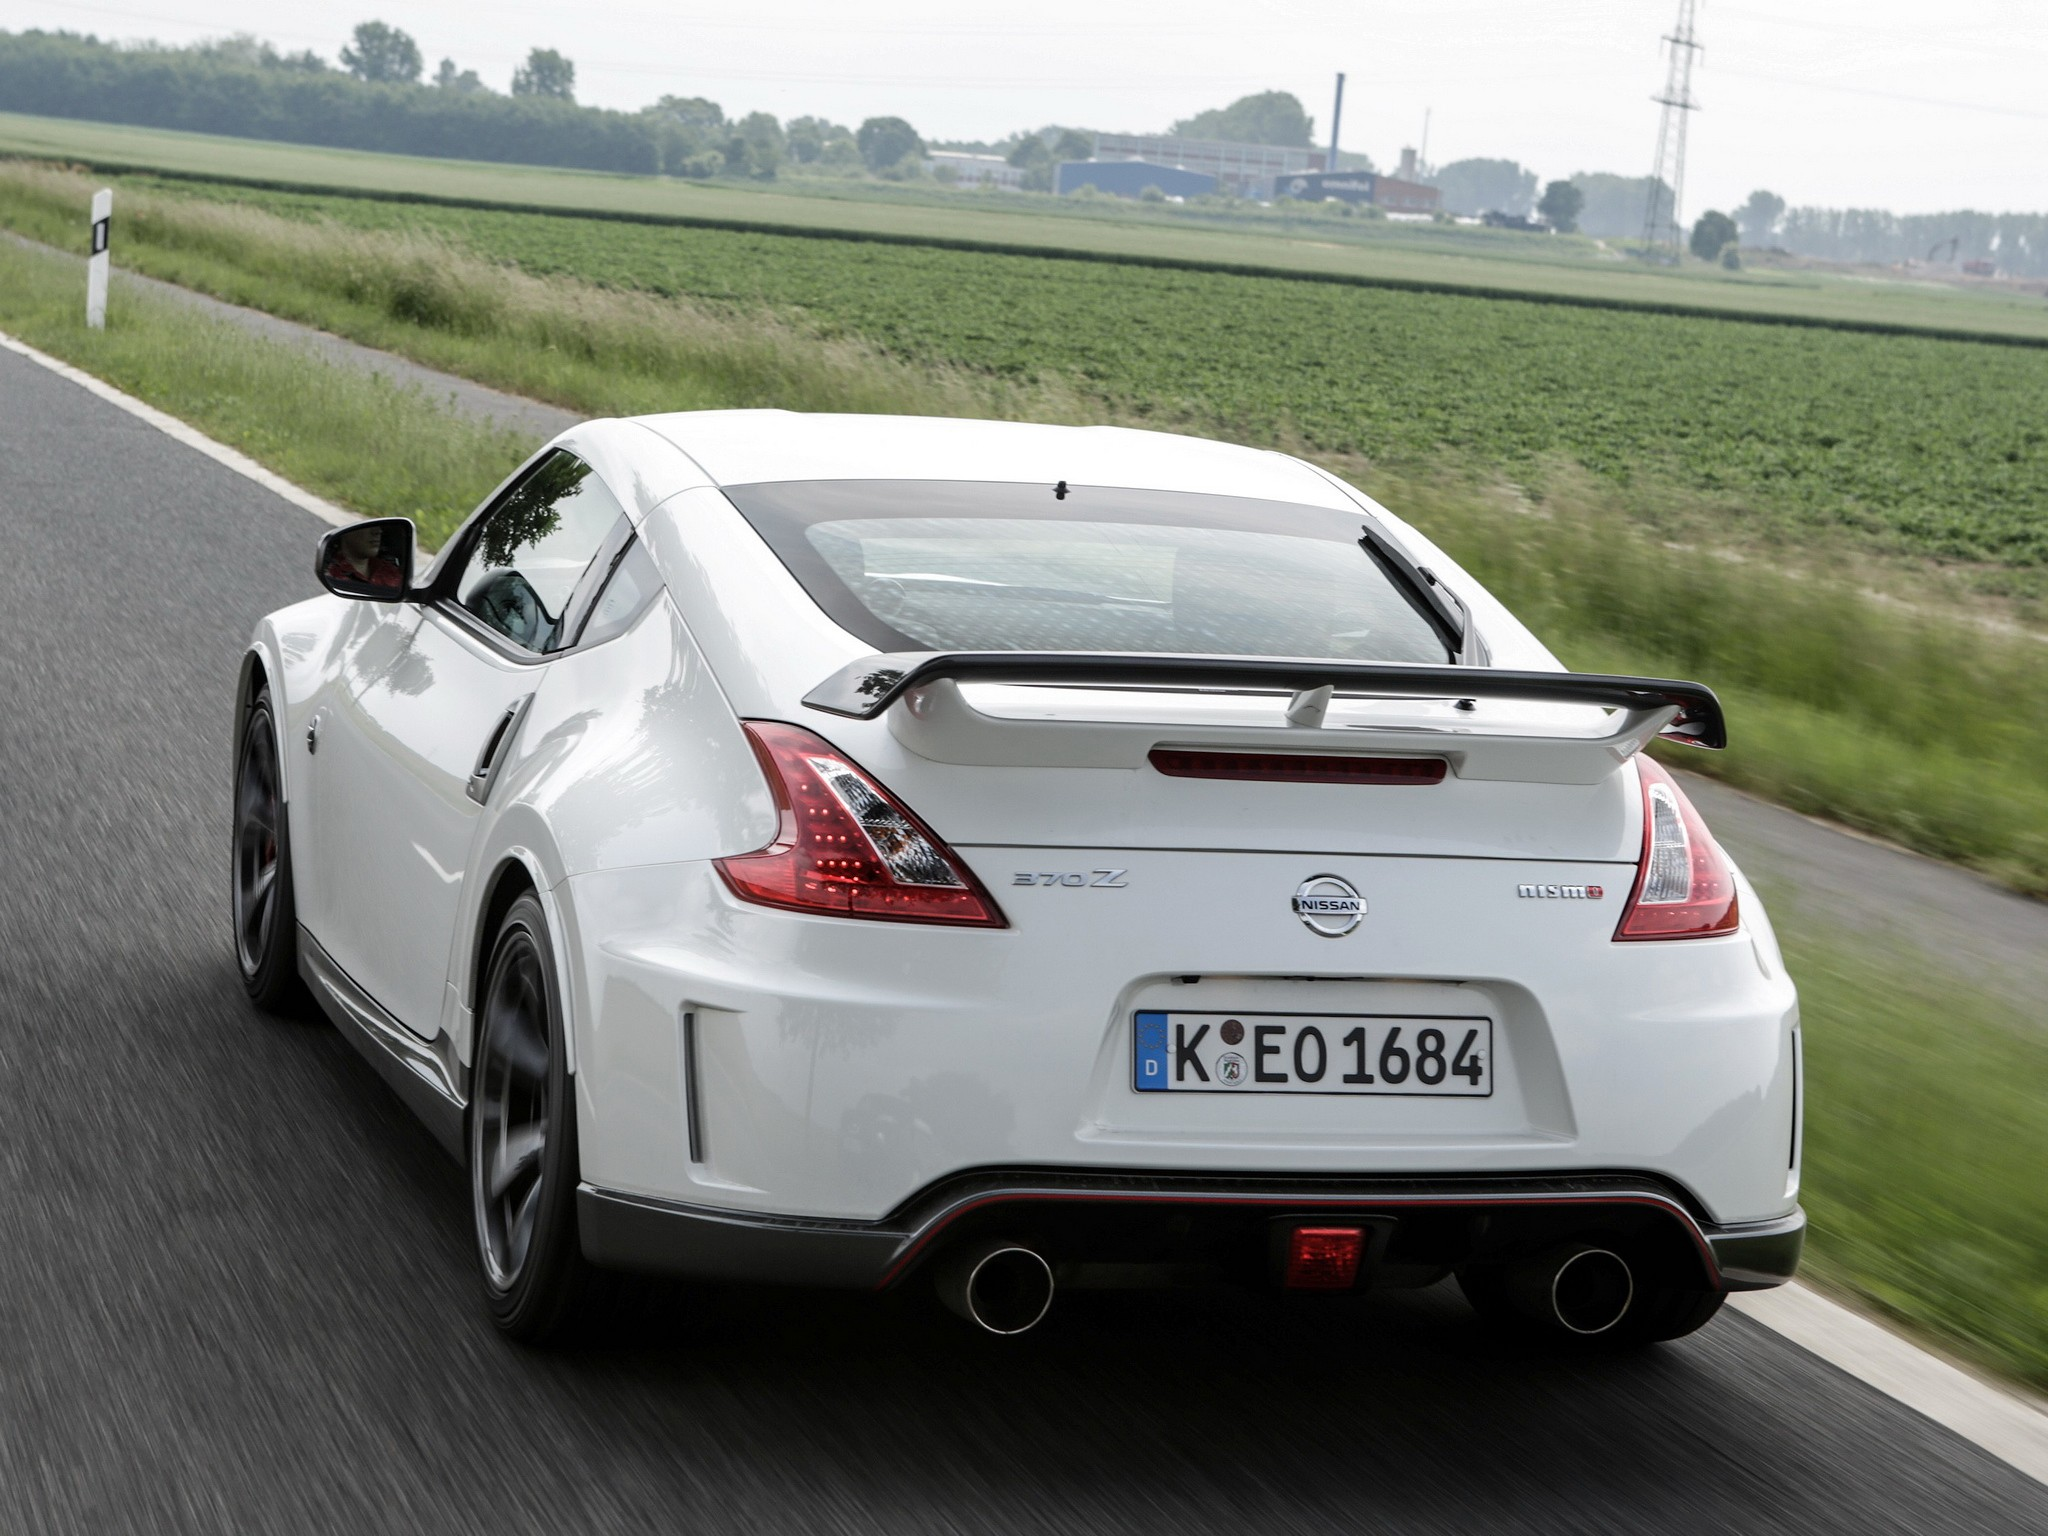 2013 nissan 370z nismo wallpaper image collections hd cars wallpaper nissan 370z nismo specs 2013 2014 autoevolution nissan 370z nismo 2013 2014 vanachro image collections vanachro Choice Image